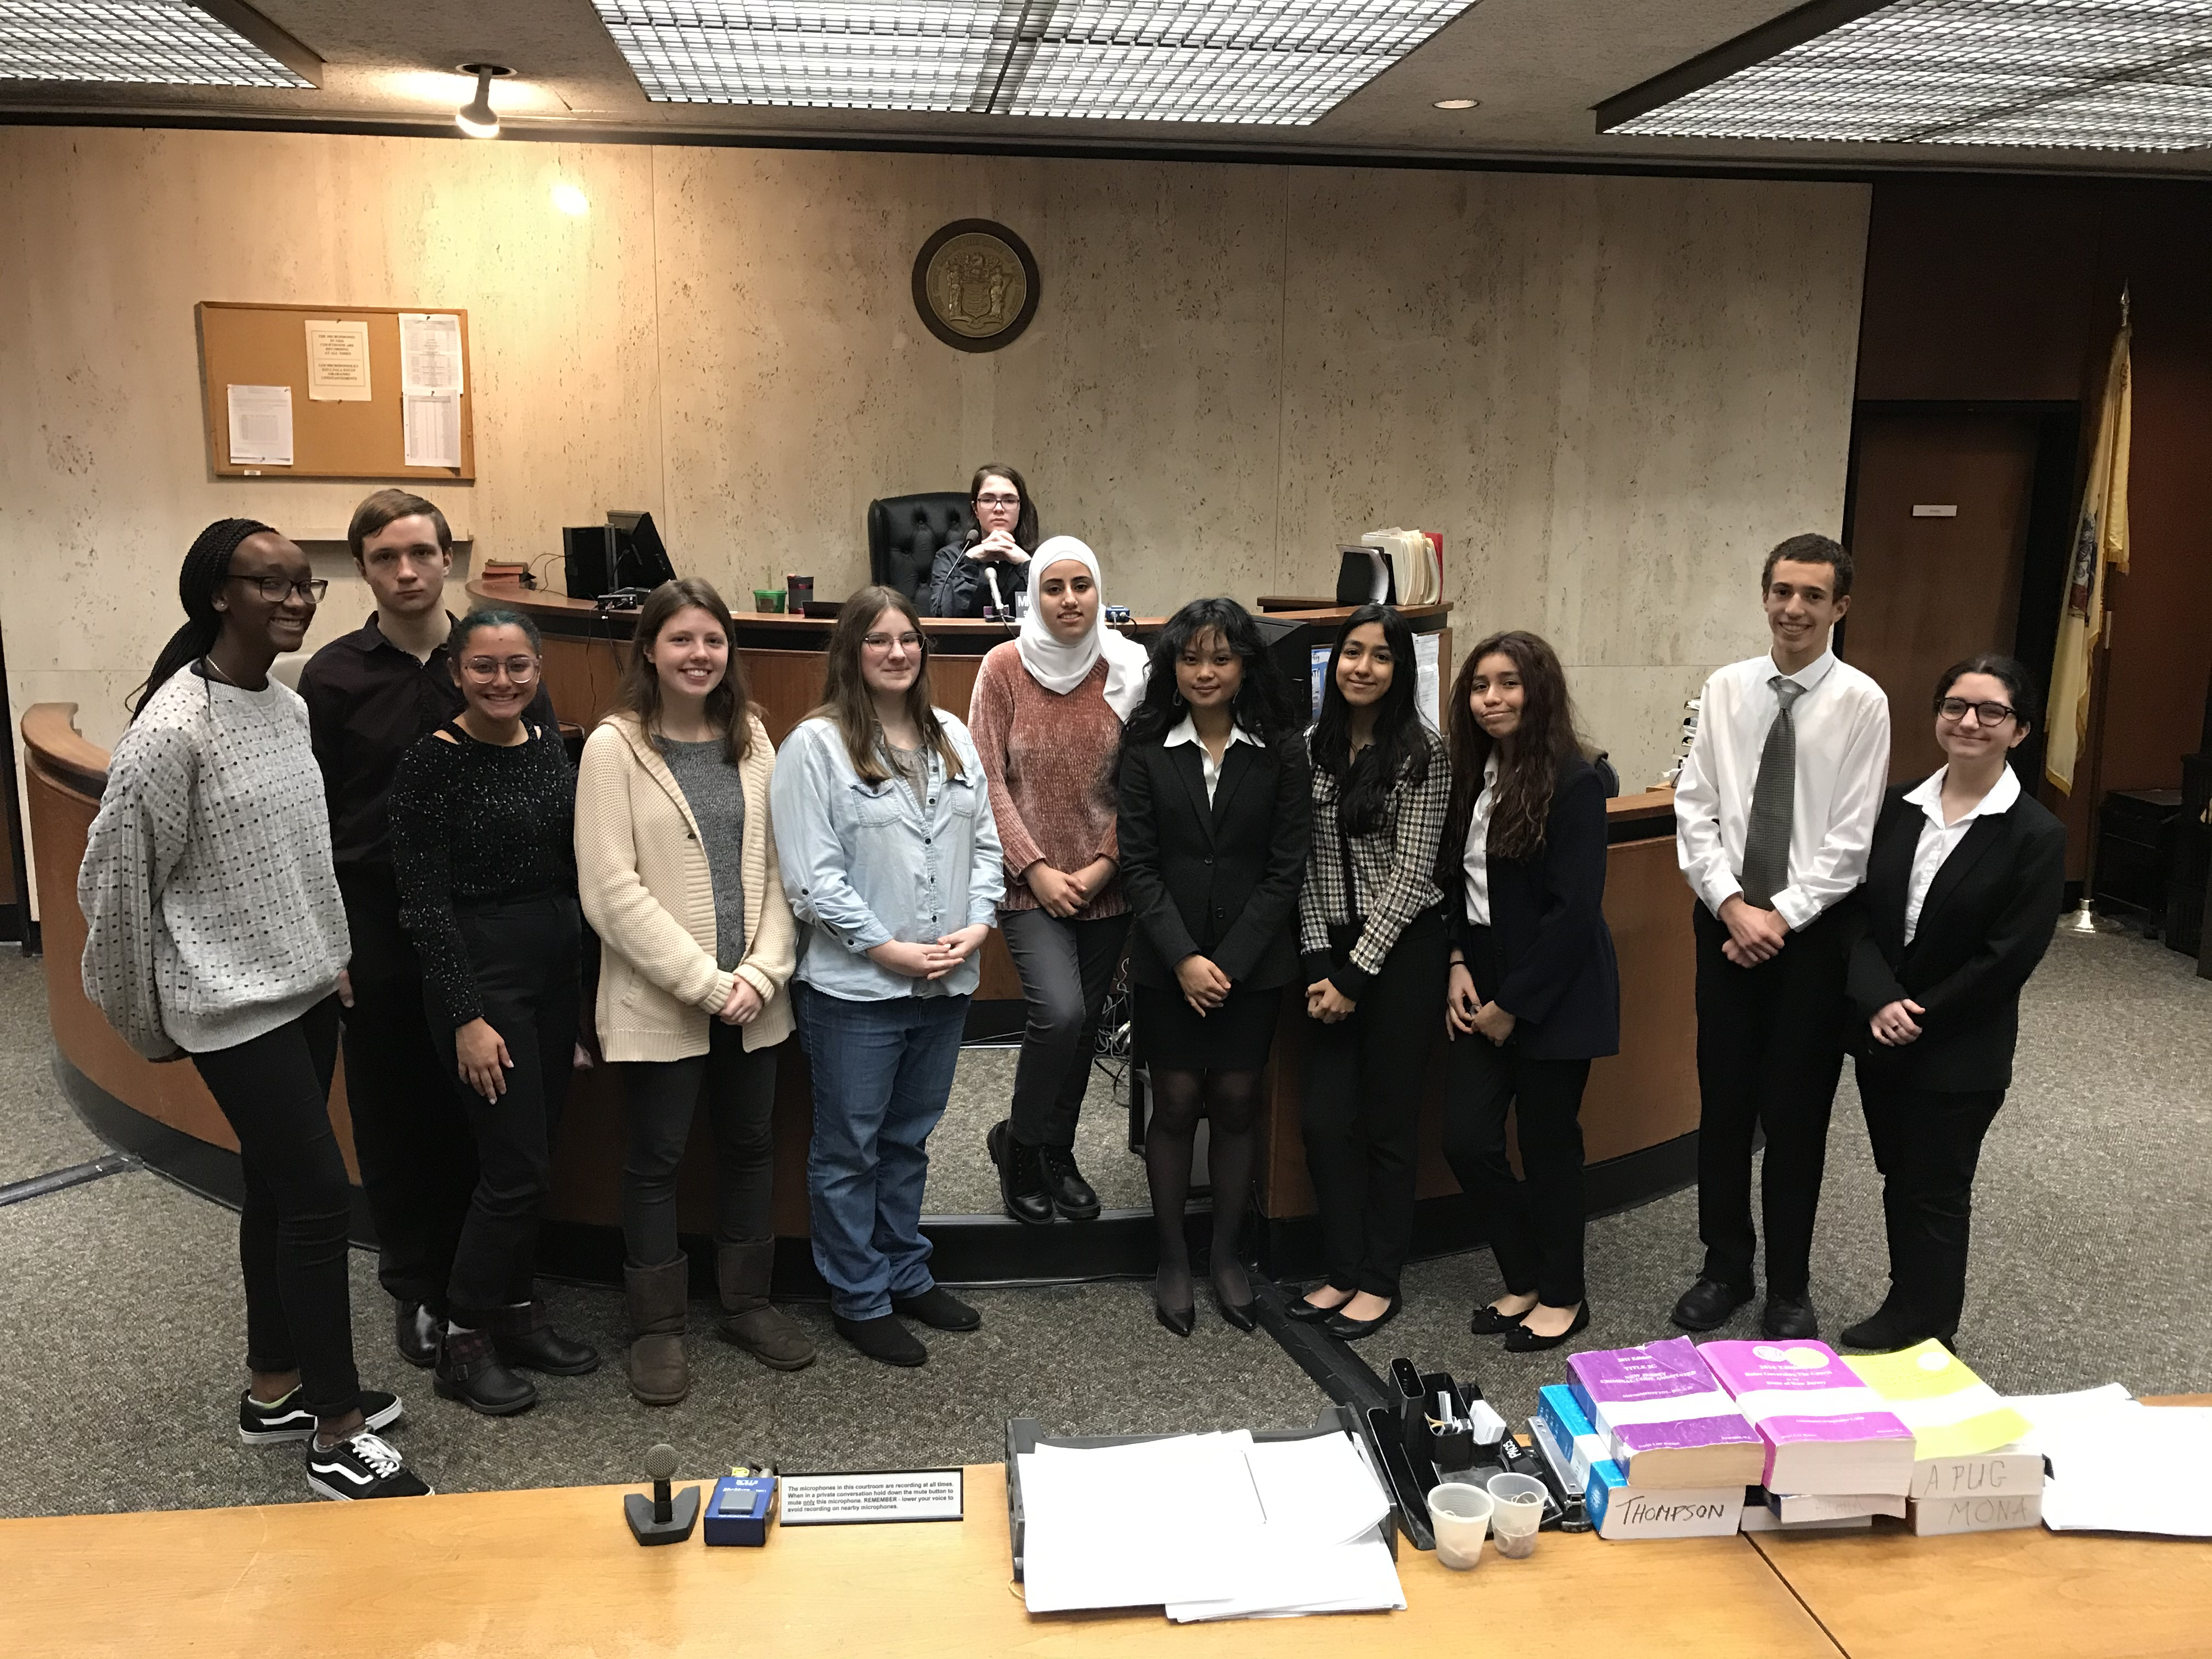 Pictured in round one (left to right) are: Amandine Soho, Nicholas  Russo, Emory Osmani, Hannah Lewis, Emily Jablonowski, Paul Ziek, Noor  Alalwan, Kat Guimary, Basma Benhibbou, Karen Tantalean, Adam Benali,  and Yuna Mehdizadeh